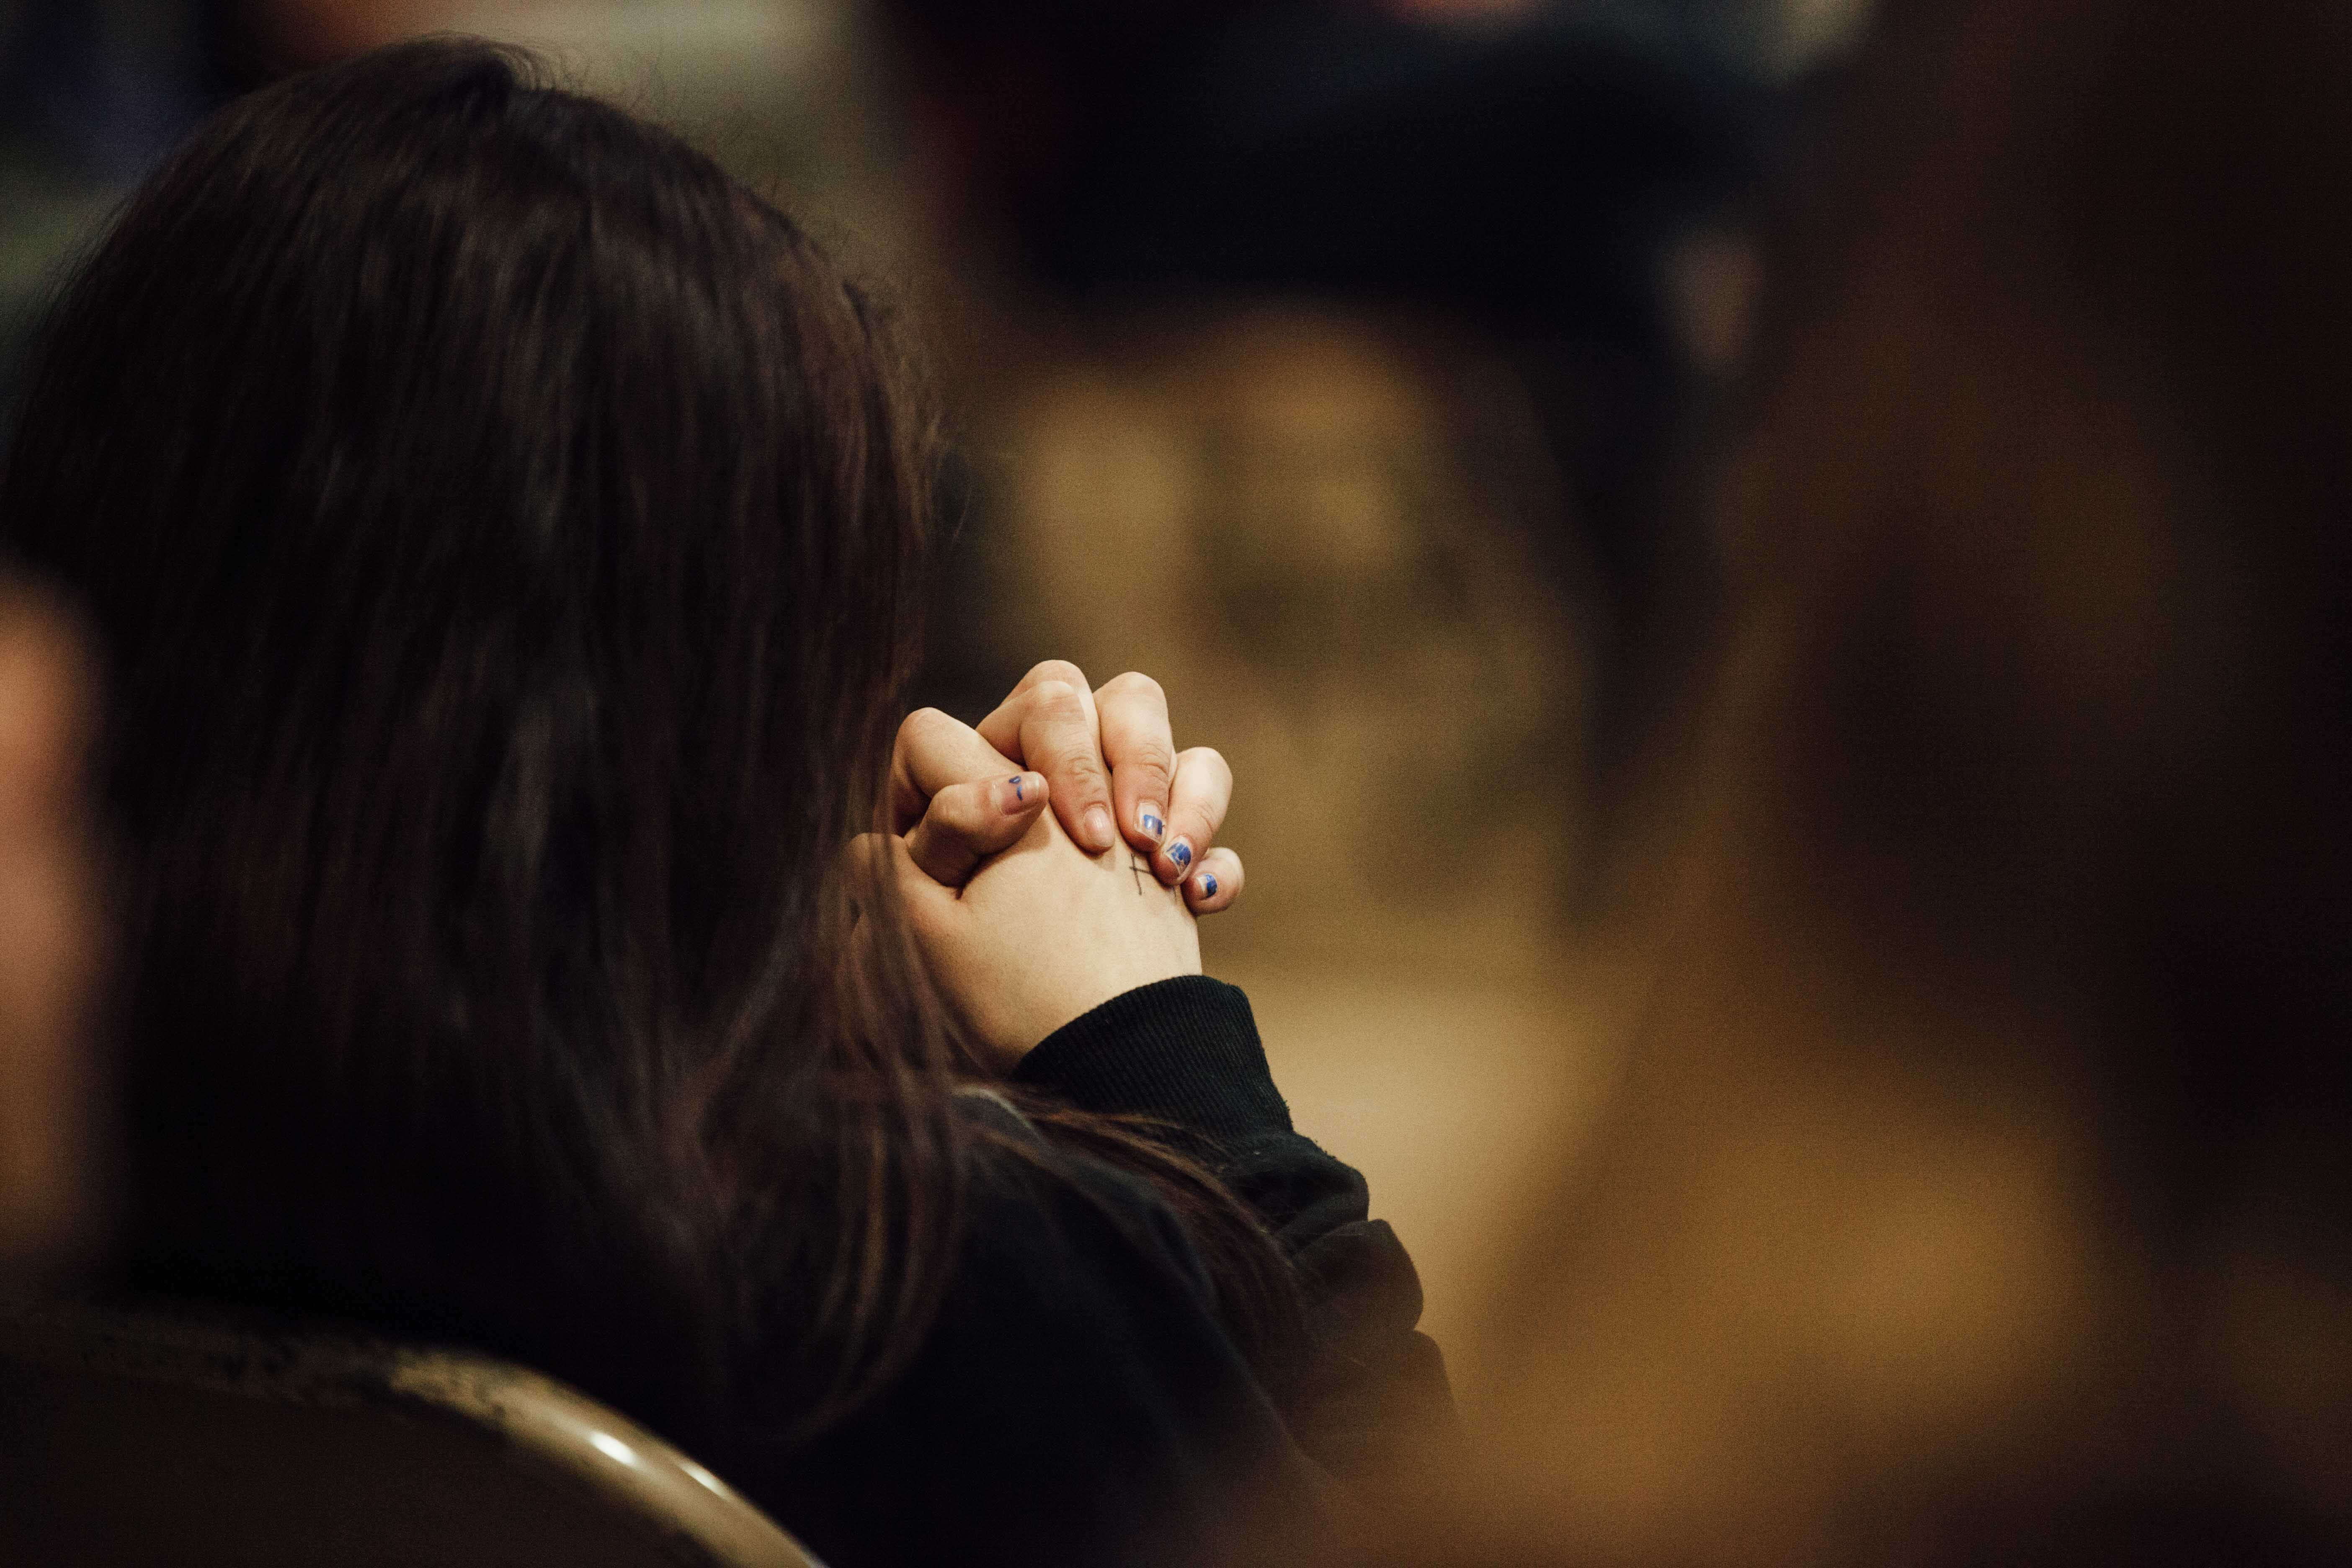 Photo: Bullying, Denver Challenge Day 2 clasped hands